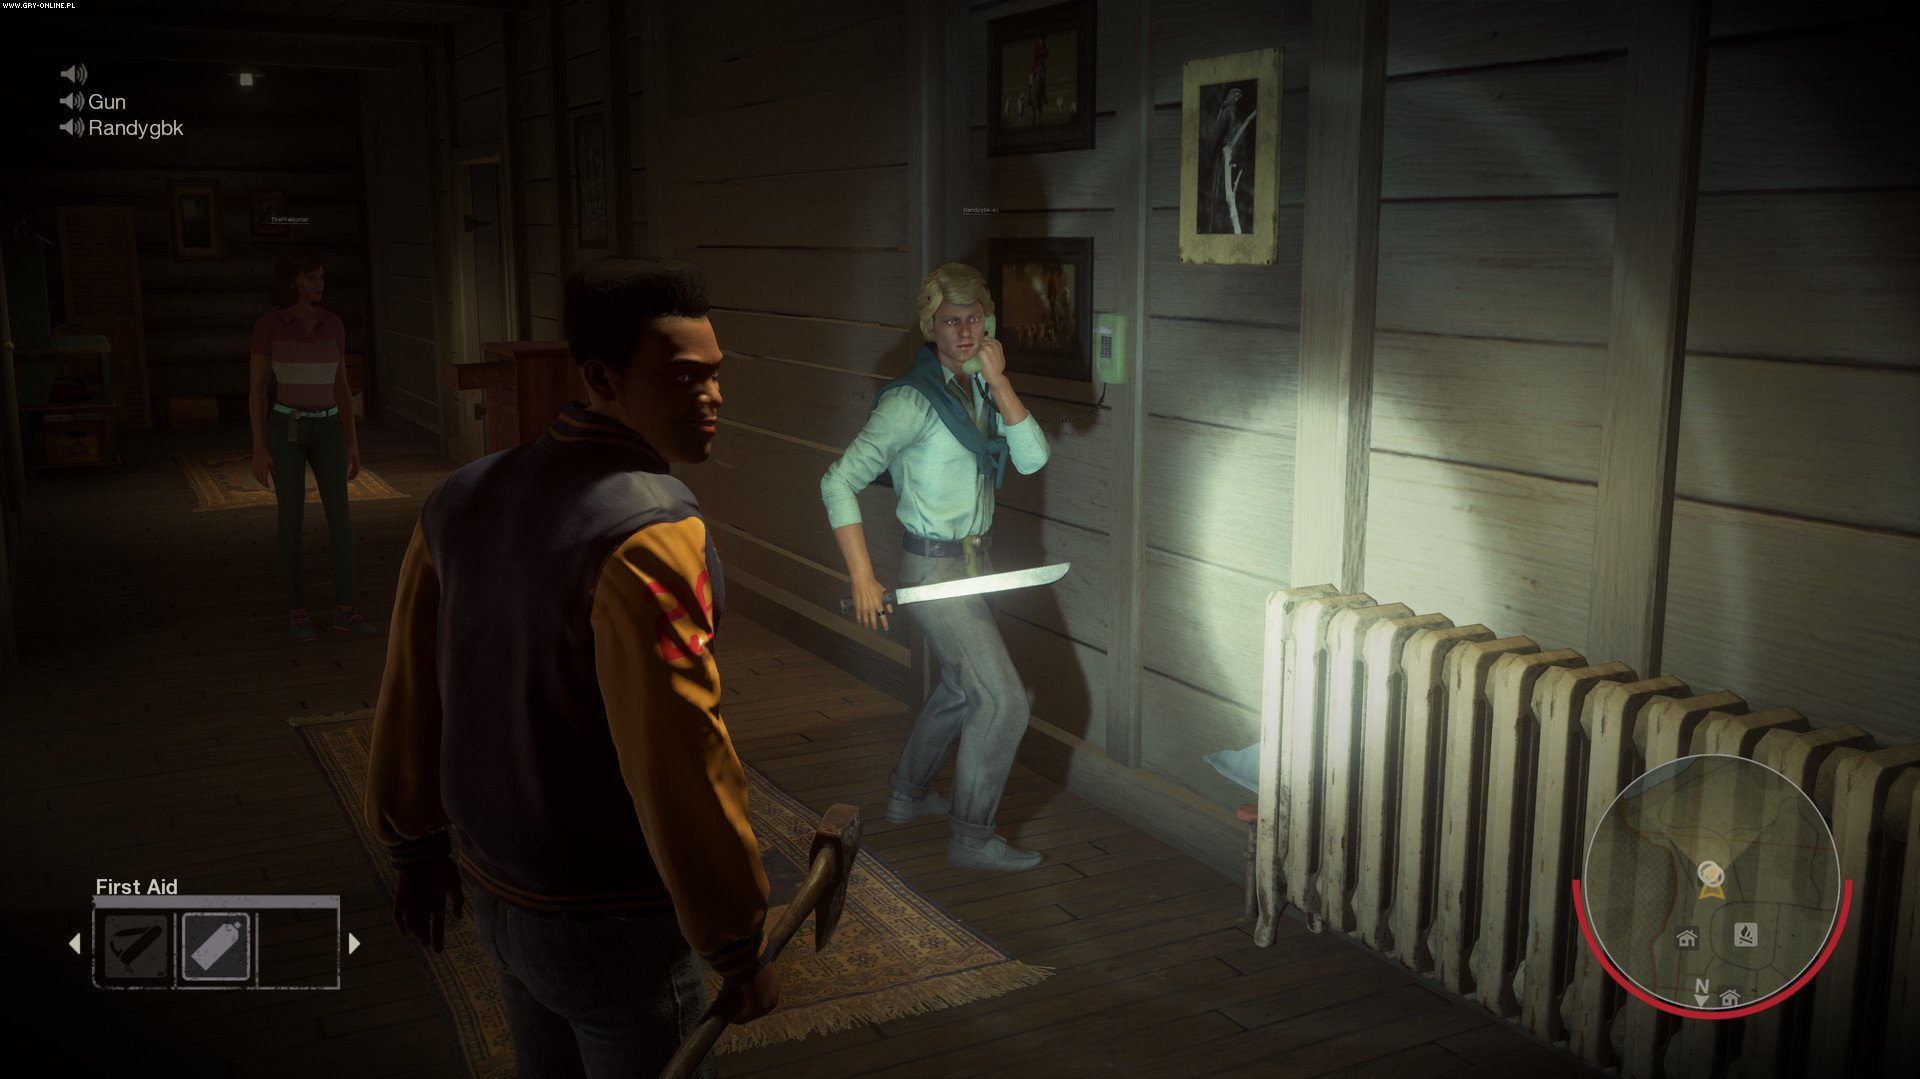 Friday the 13th: The Game PC, PS4, XONE Games Image 8/18, Illfonic Games, Gun Media